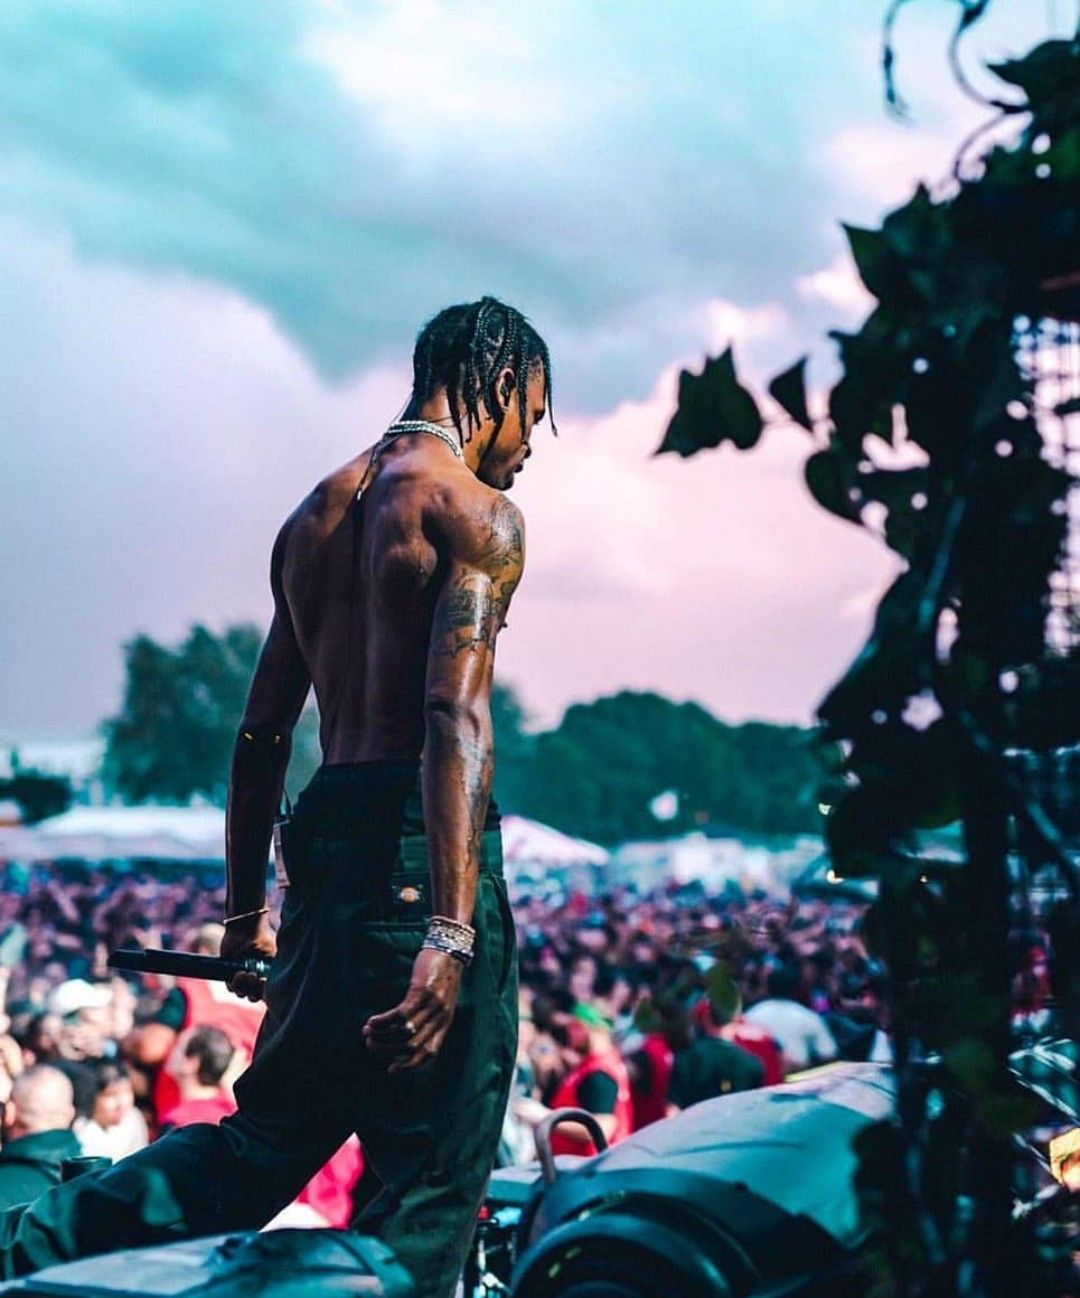 Pin By Kiana Cobb On Travis Scott Travis Scott Wallpapers Travis Scott Iphone Wallpaper Travis Scott Art